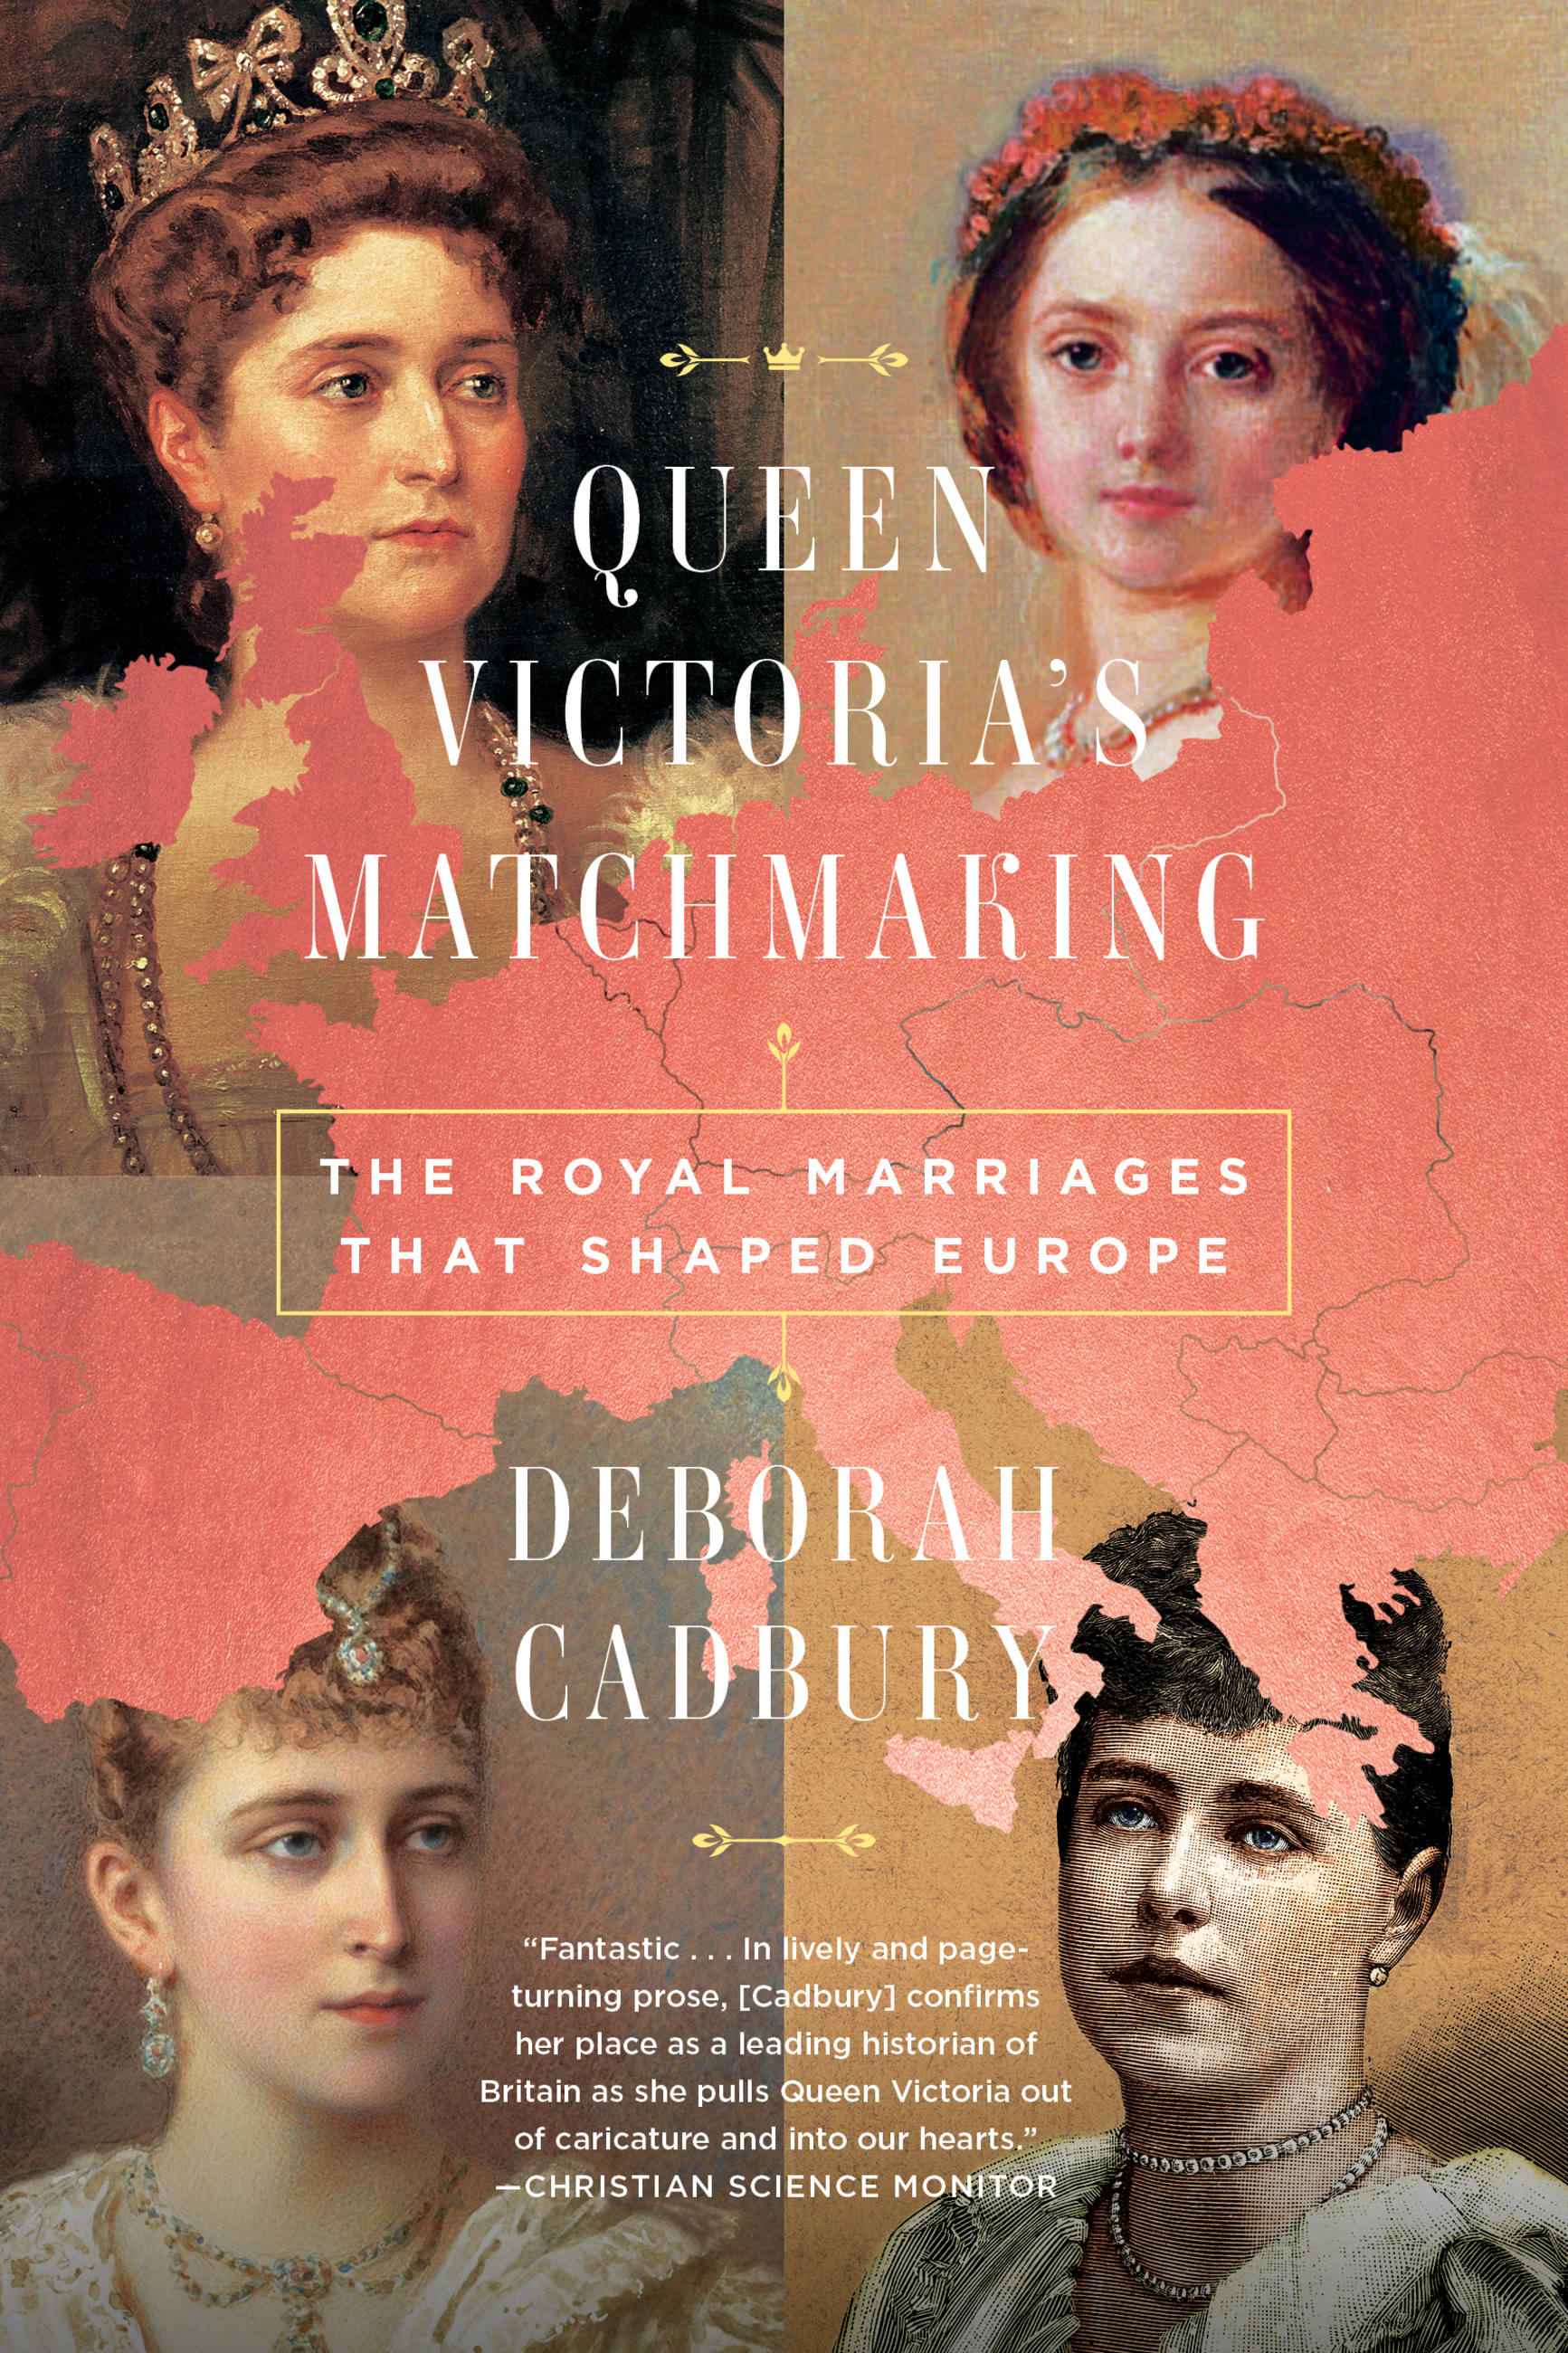 Queen Victoria's Matchmaking The Royal Marriages that Shaped Europe